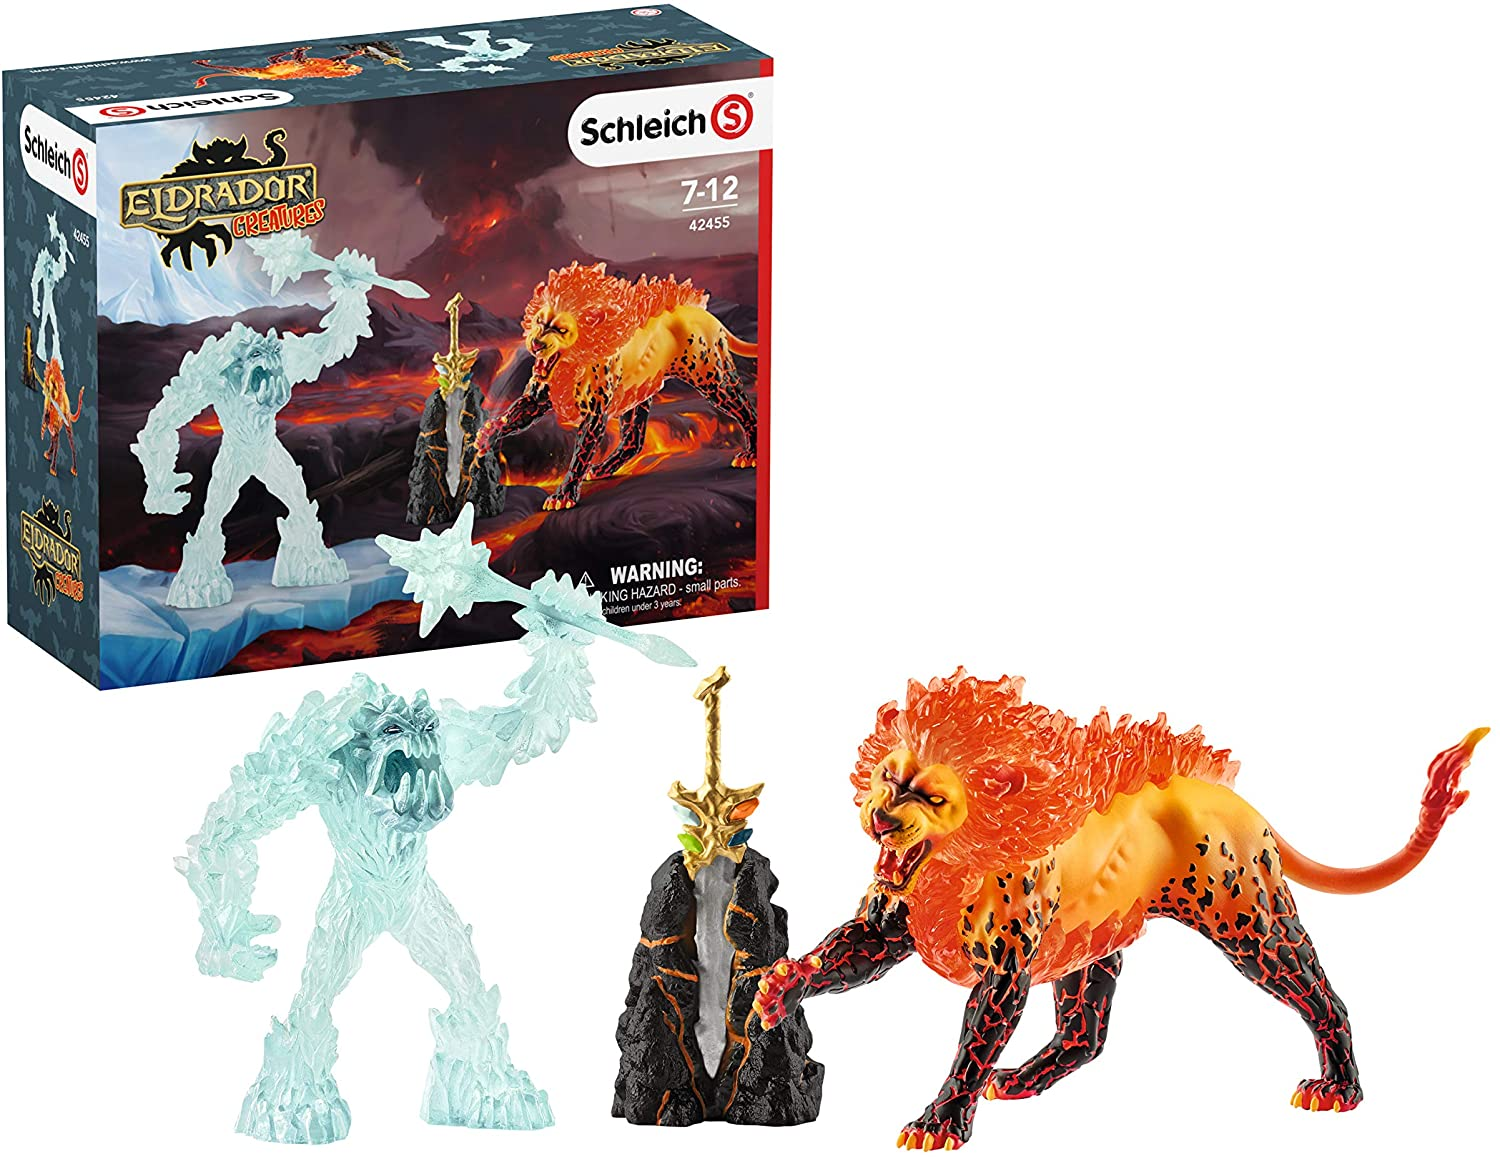 Schleich Eldrador Creatures Battle for the Super Weapon 5-piece Action Figure Toy Playset for Kids Ages 7-12